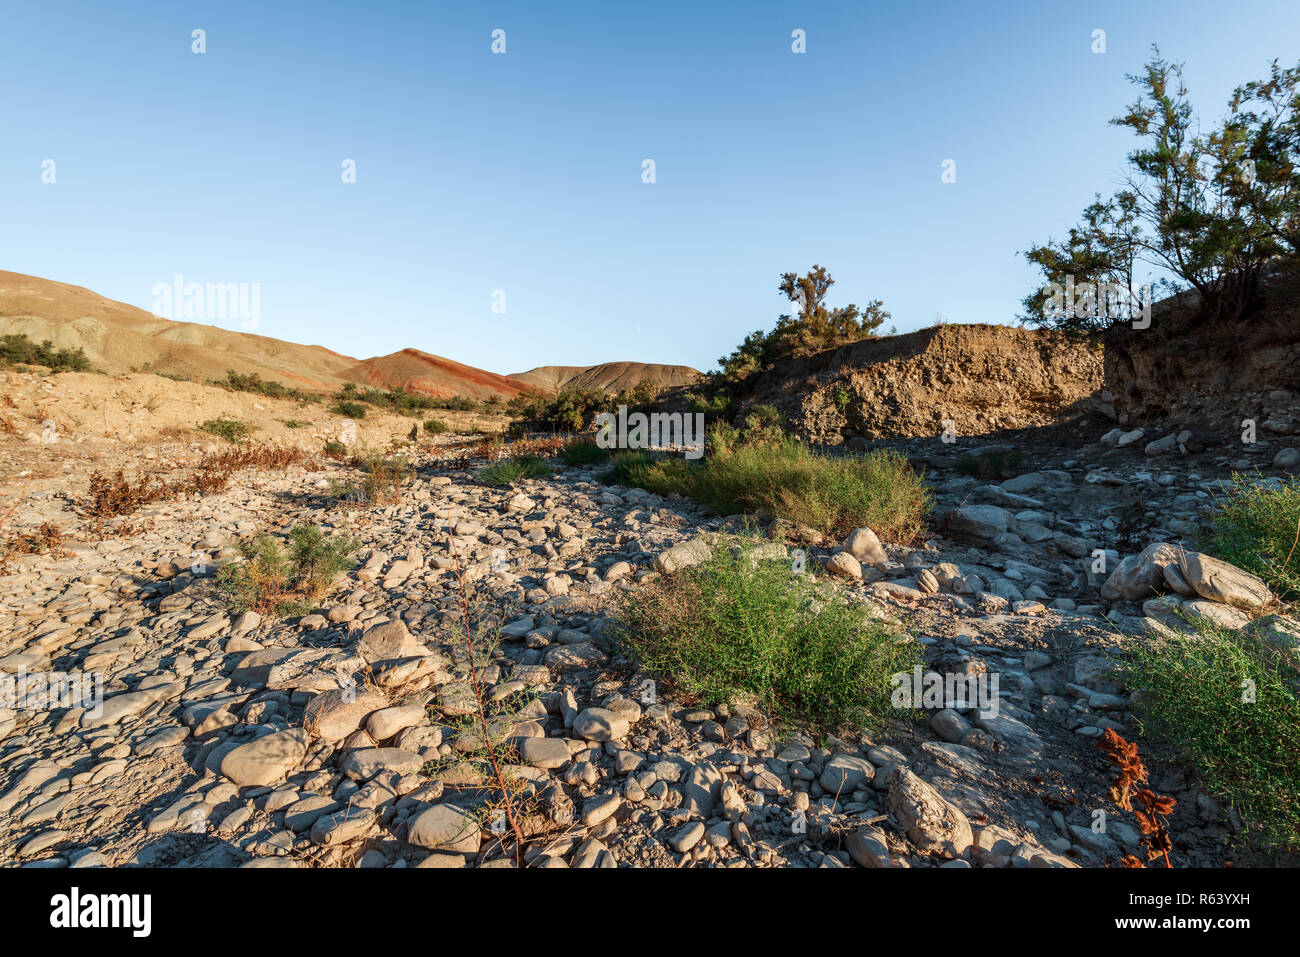 Dried riverbed of a mountain river - Stock Image